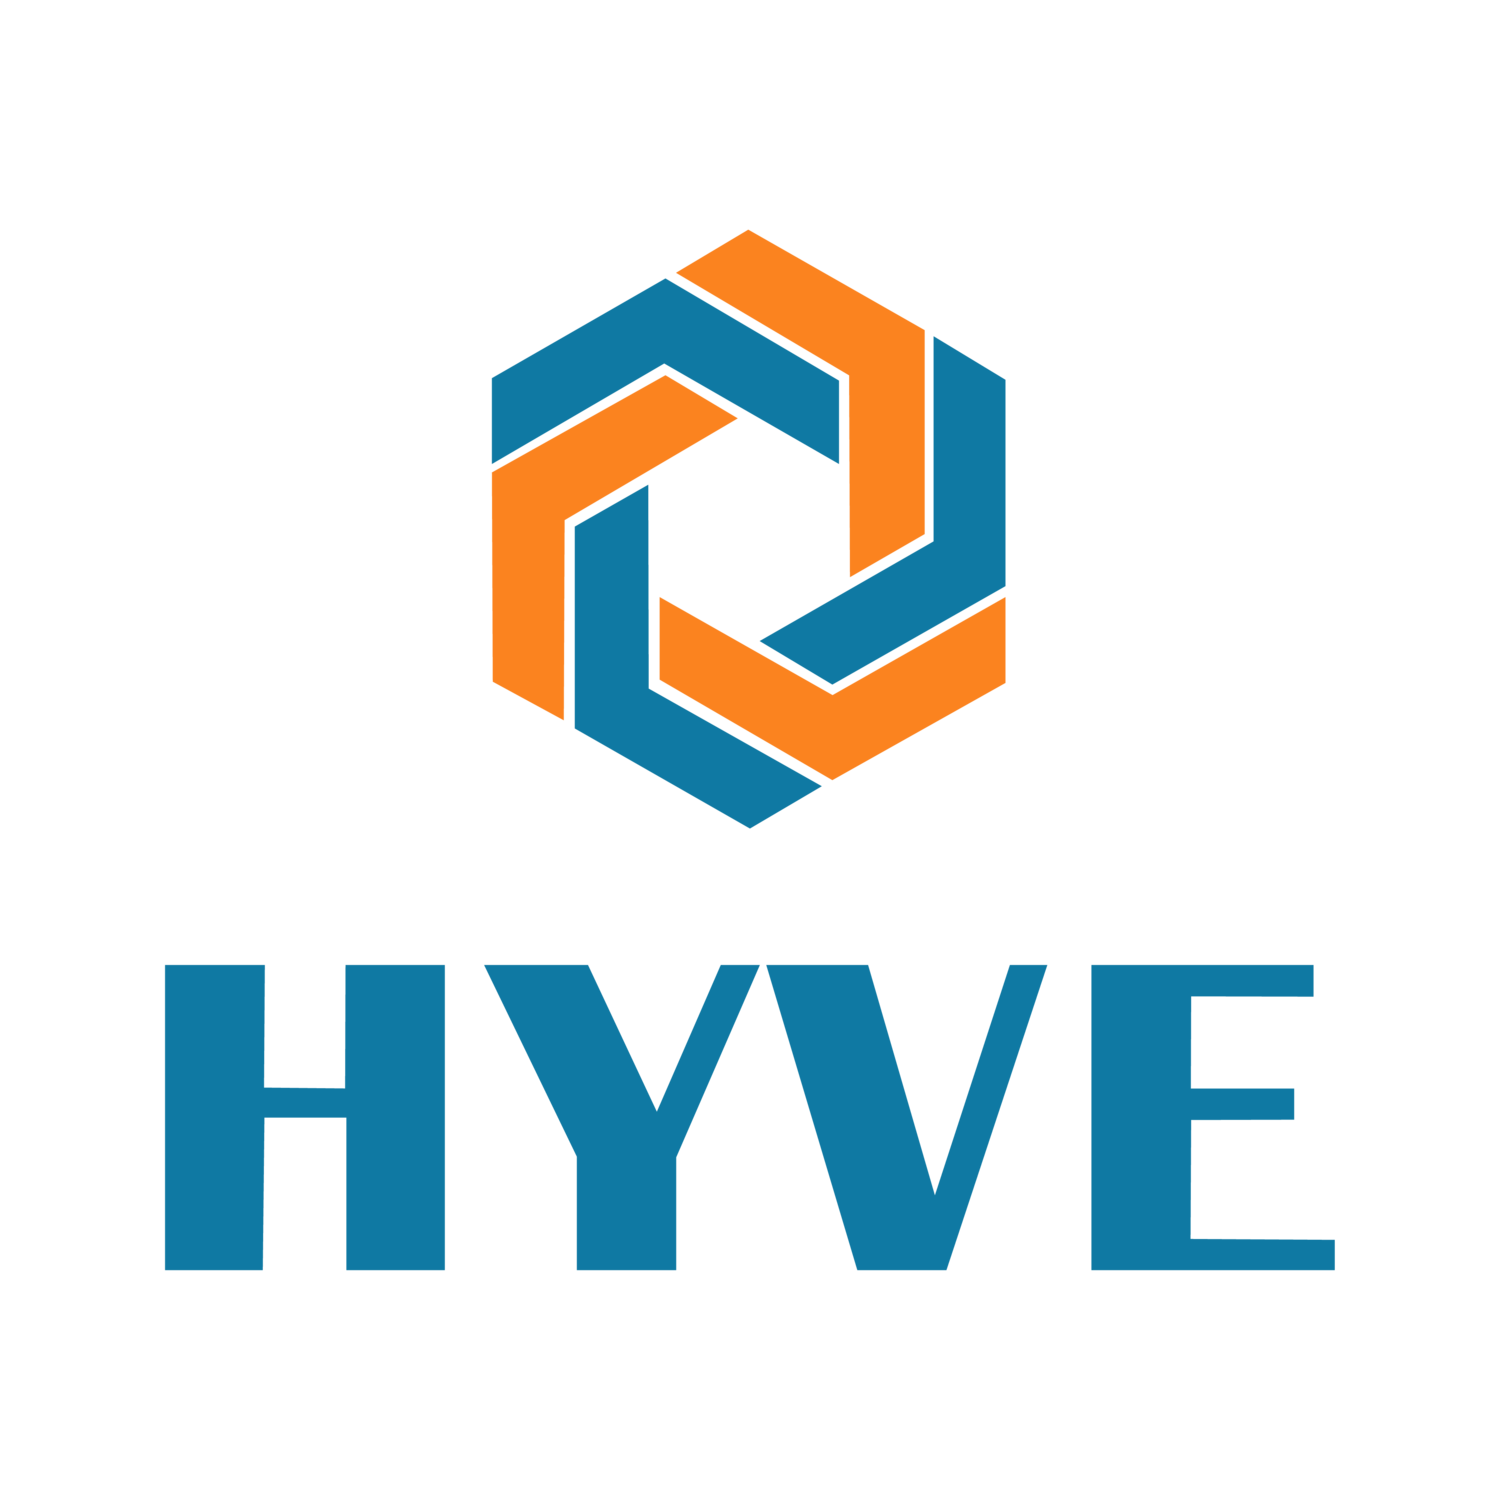 HYVE PR & COMMUNICATIONS | Media, PR, Marketing, Events